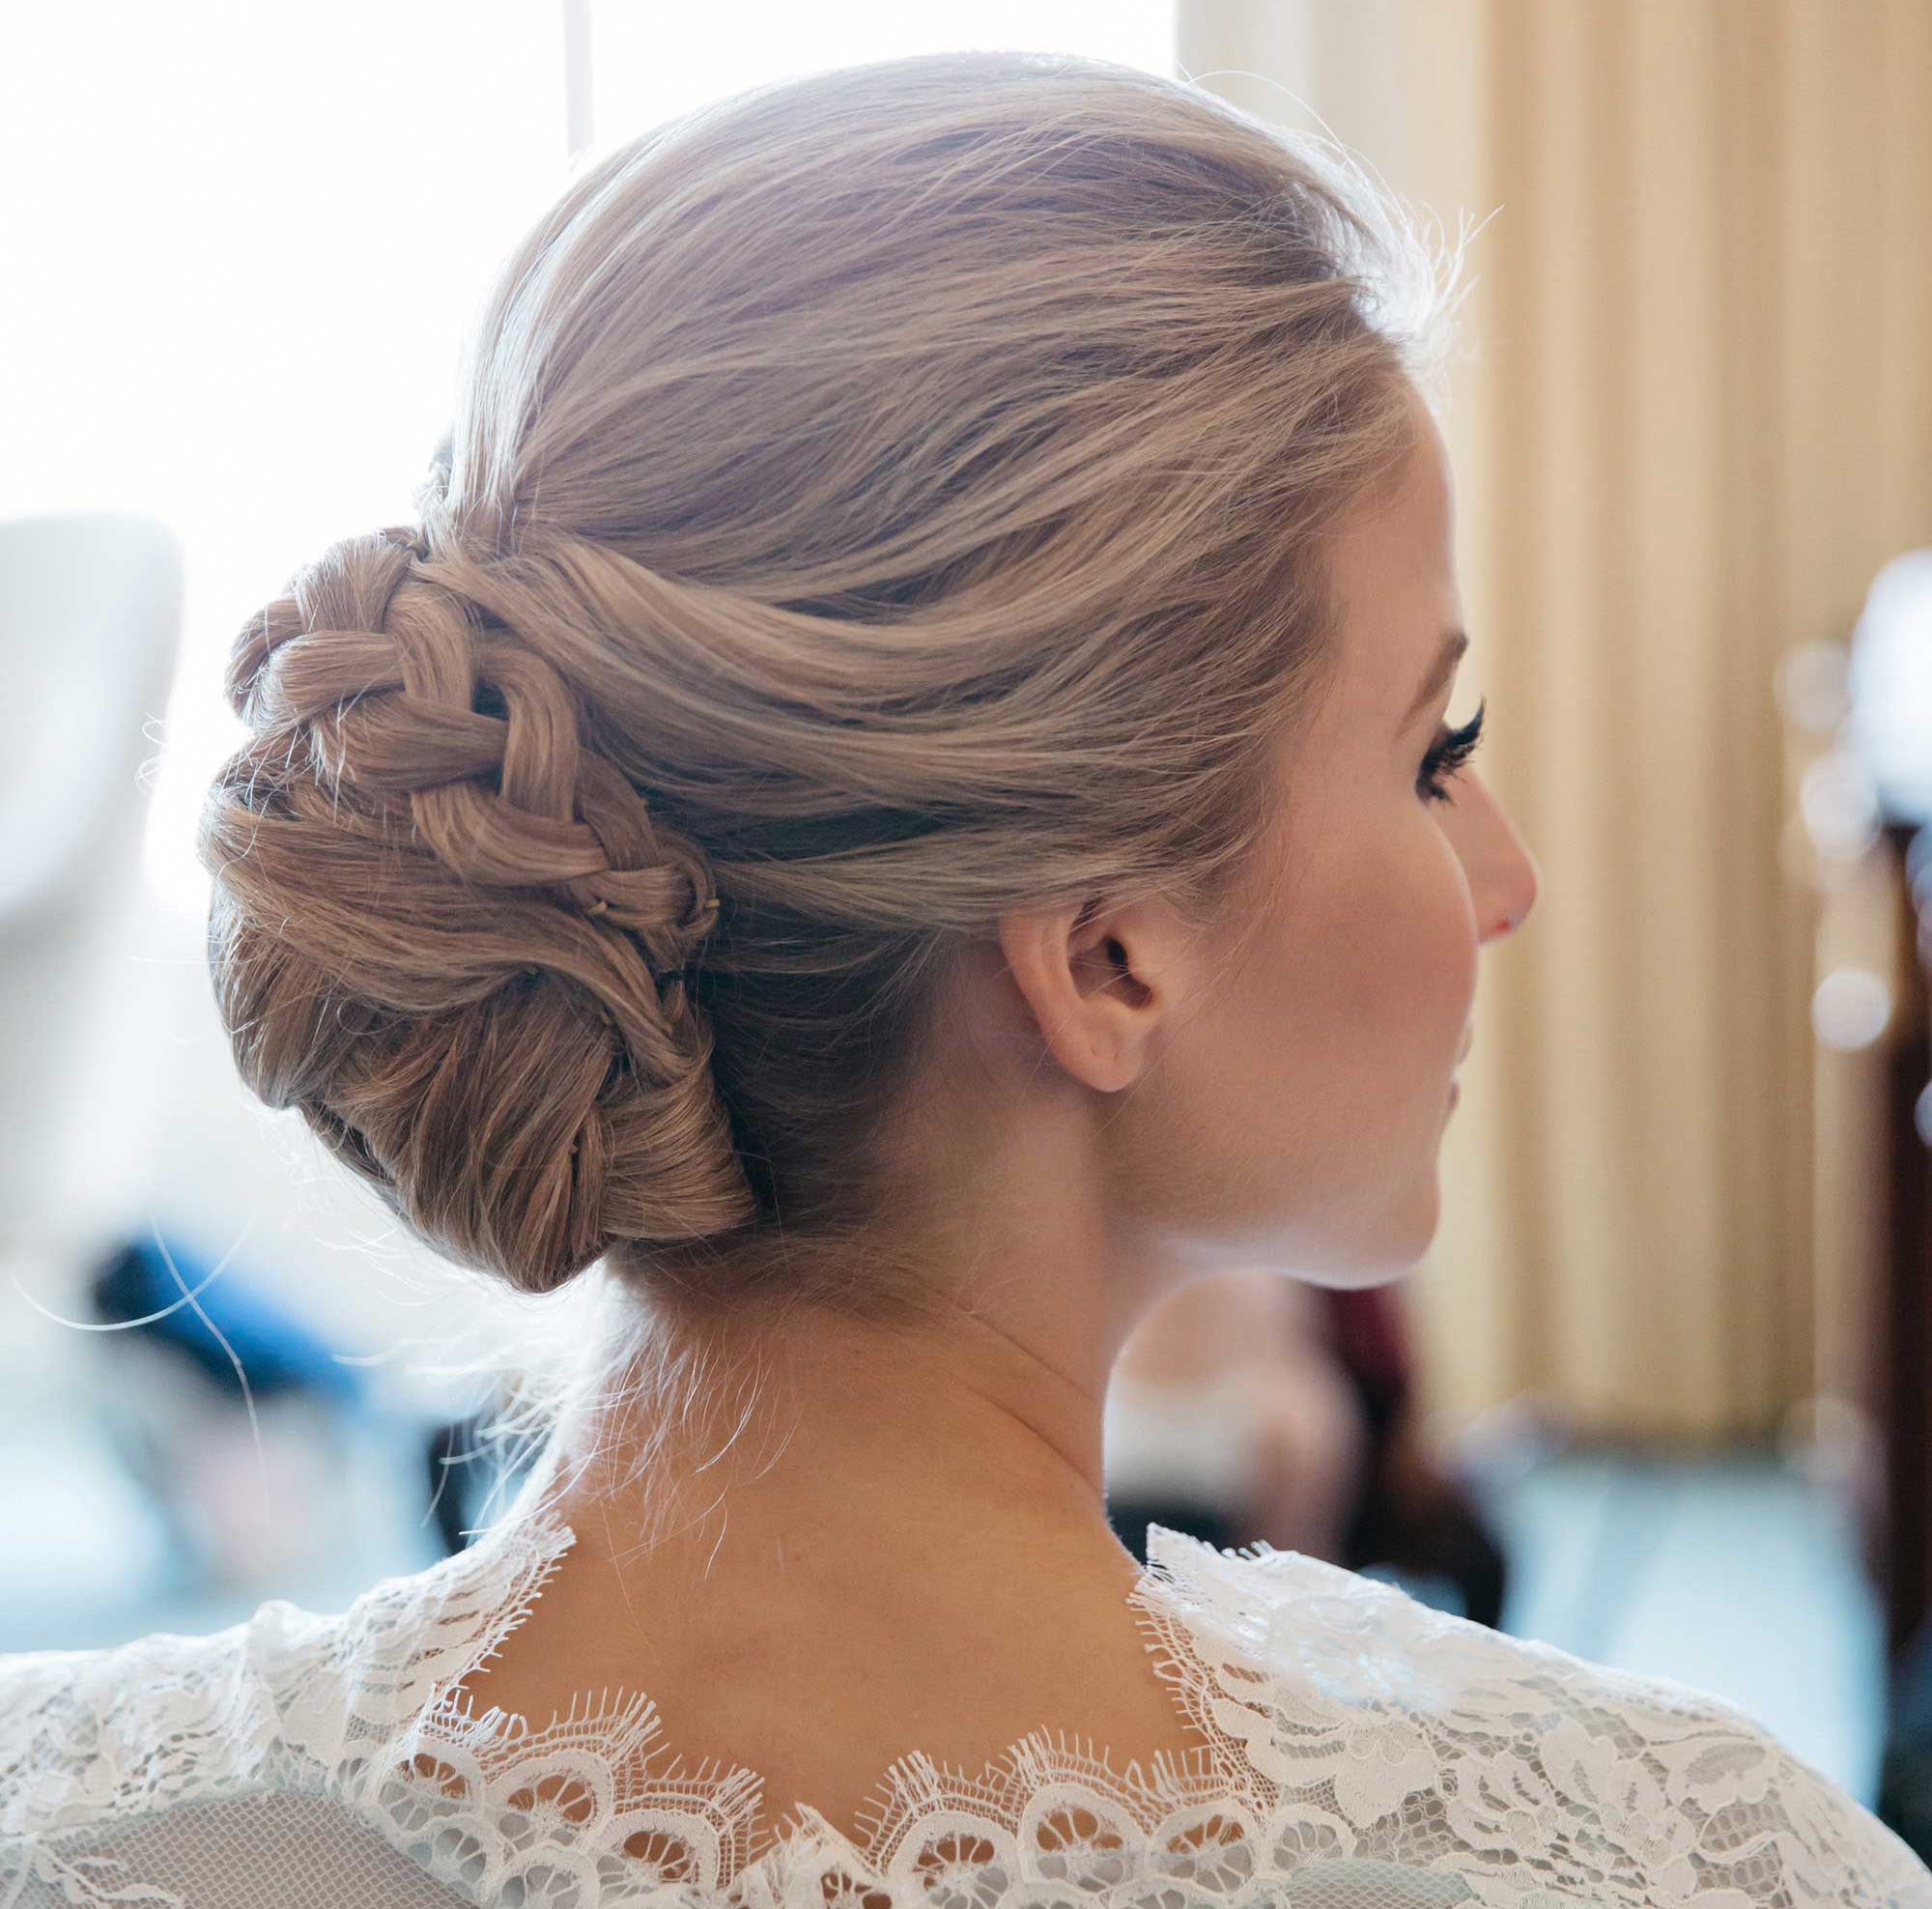 Wondrous Braided Hairstyles 5 Ideas For Your Wedding Look Inside Weddings Short Hairstyles For Black Women Fulllsitofus